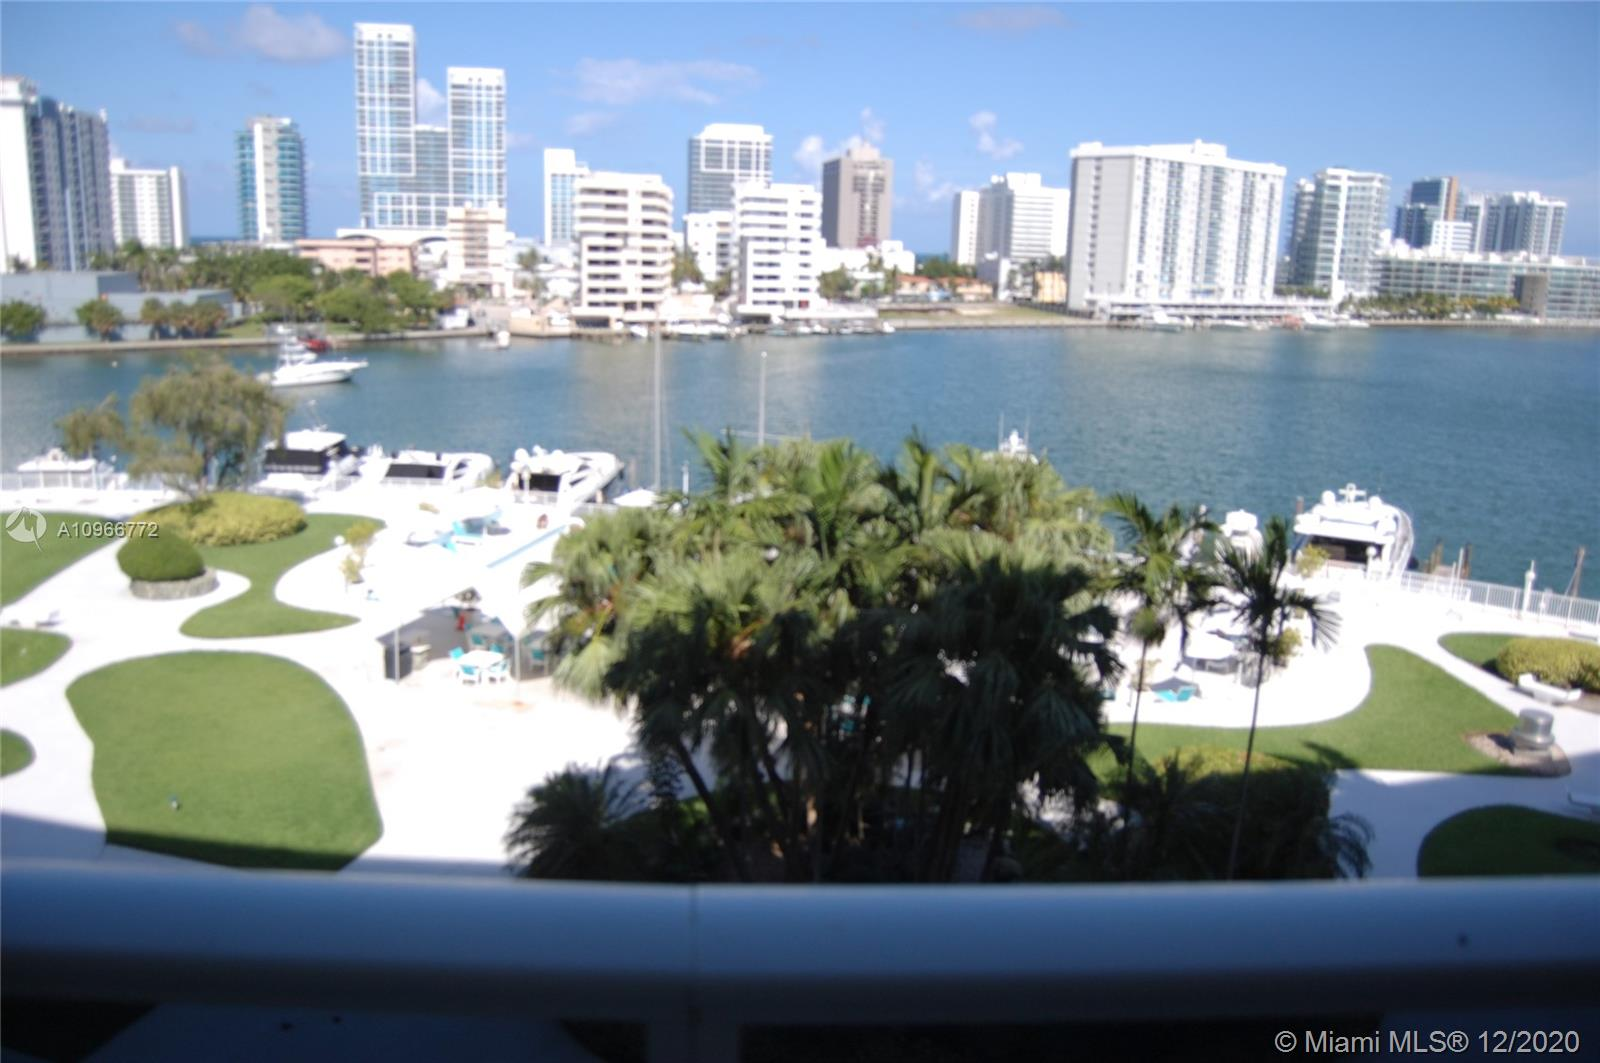 DIRECT Panoramic Waterfront Views from this Spectacular, Modern, Turnkey, Renovated, Waterfront Large 1 Bedroom (1,075 sq ft) with very large balcony with great views south and east. Even numbered units have the best views and face South. Overlooking Intracoastal, Allison Island, La Gorce Island and Miami Beach. Large Closets, Floor-to-ceiling windows, Flat Screen TV's in Living Room and Bedroom.  Maintenance includes Electric, A/C, Cable, Internet, WiFi, Water and All Amenities. Full Amenity Building with Olympic Size Heated Pool, Gym, 24/7 Security, Doorman..Historic MIMO architecture. One parking space is included. Pet friendly building allows up to 30 pounds. Walking distance to beach, restaurants, supermarkets, and shops.